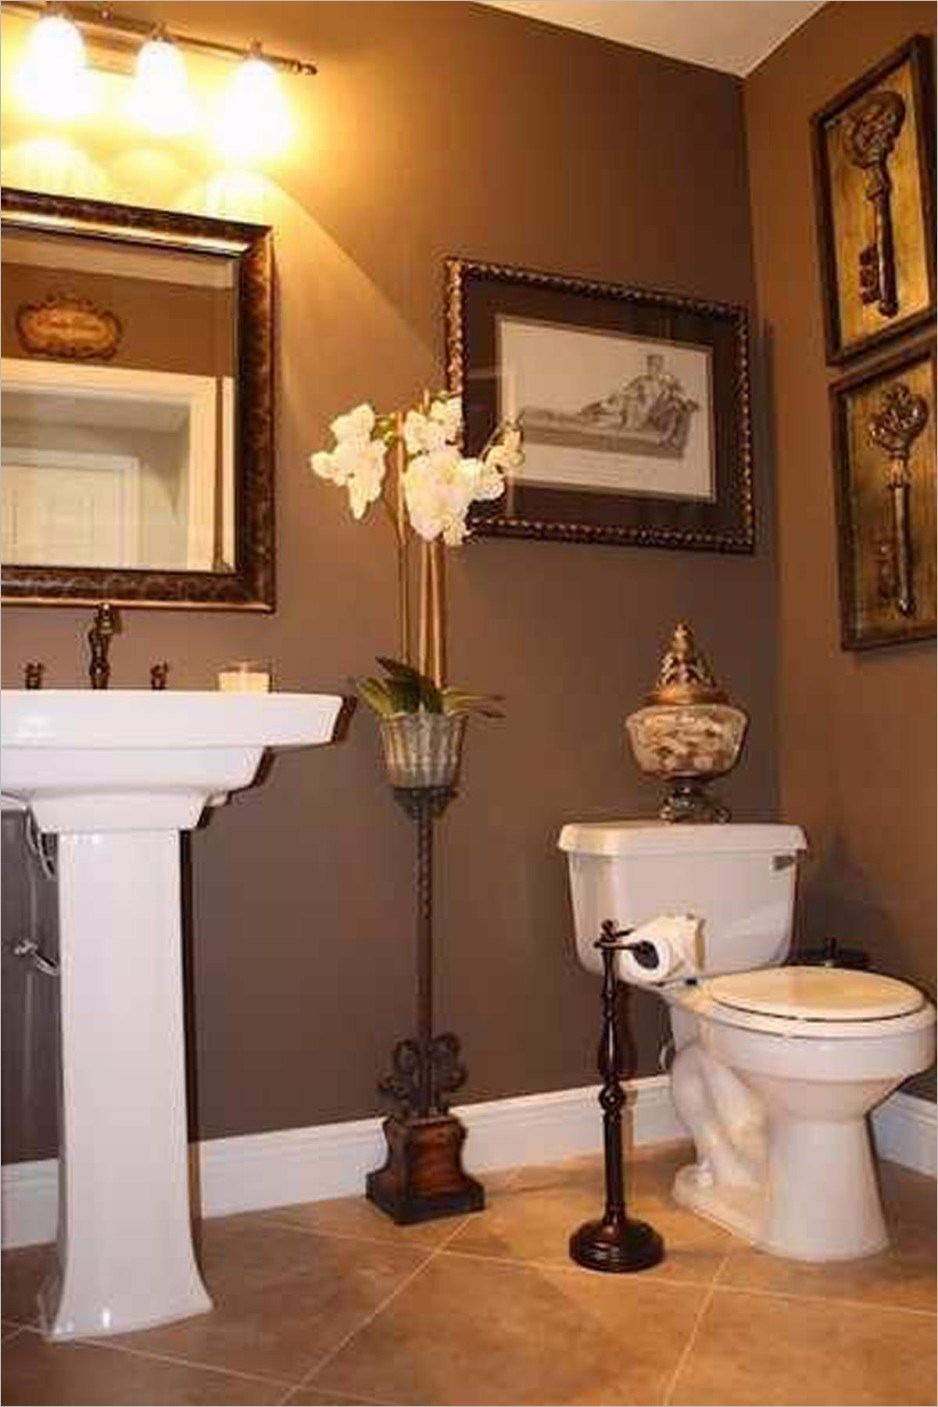 Bathroom Decorating Accessories and Ideas Unique Bathroom Accessories Decorating Ideas